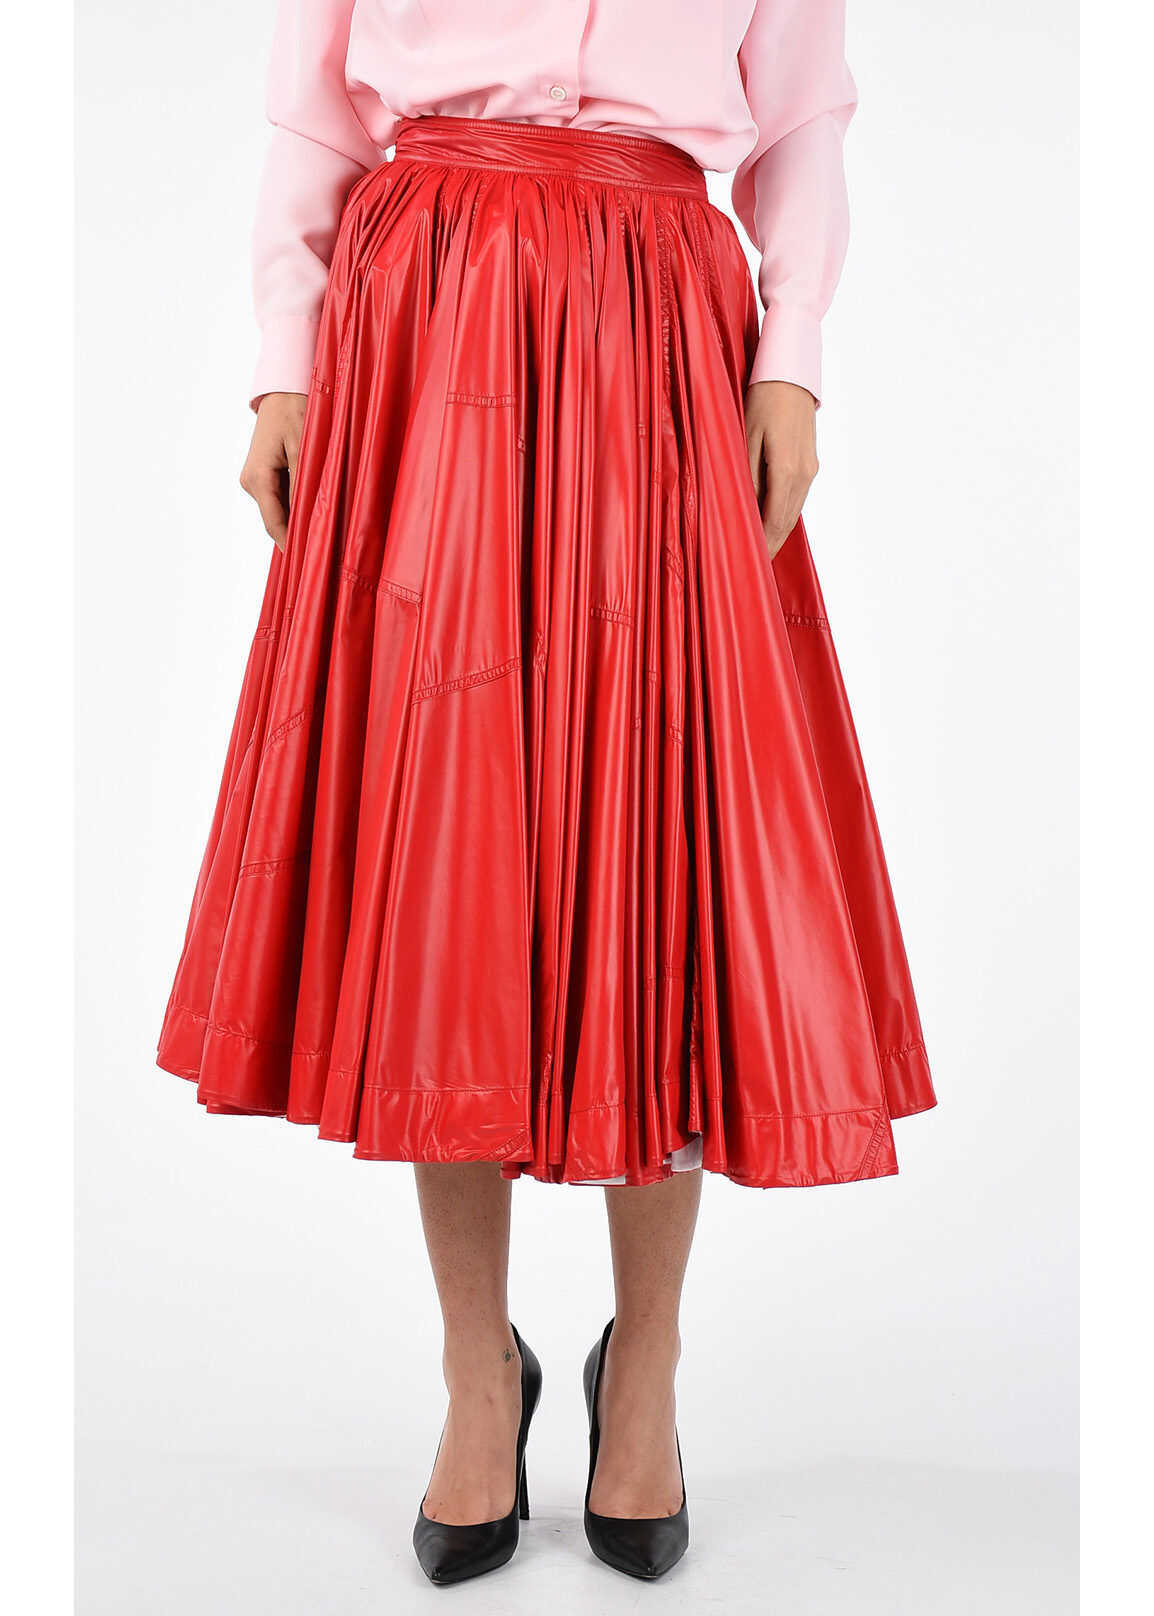 Calvin Klein 205W39NYC Flared Skirt RED